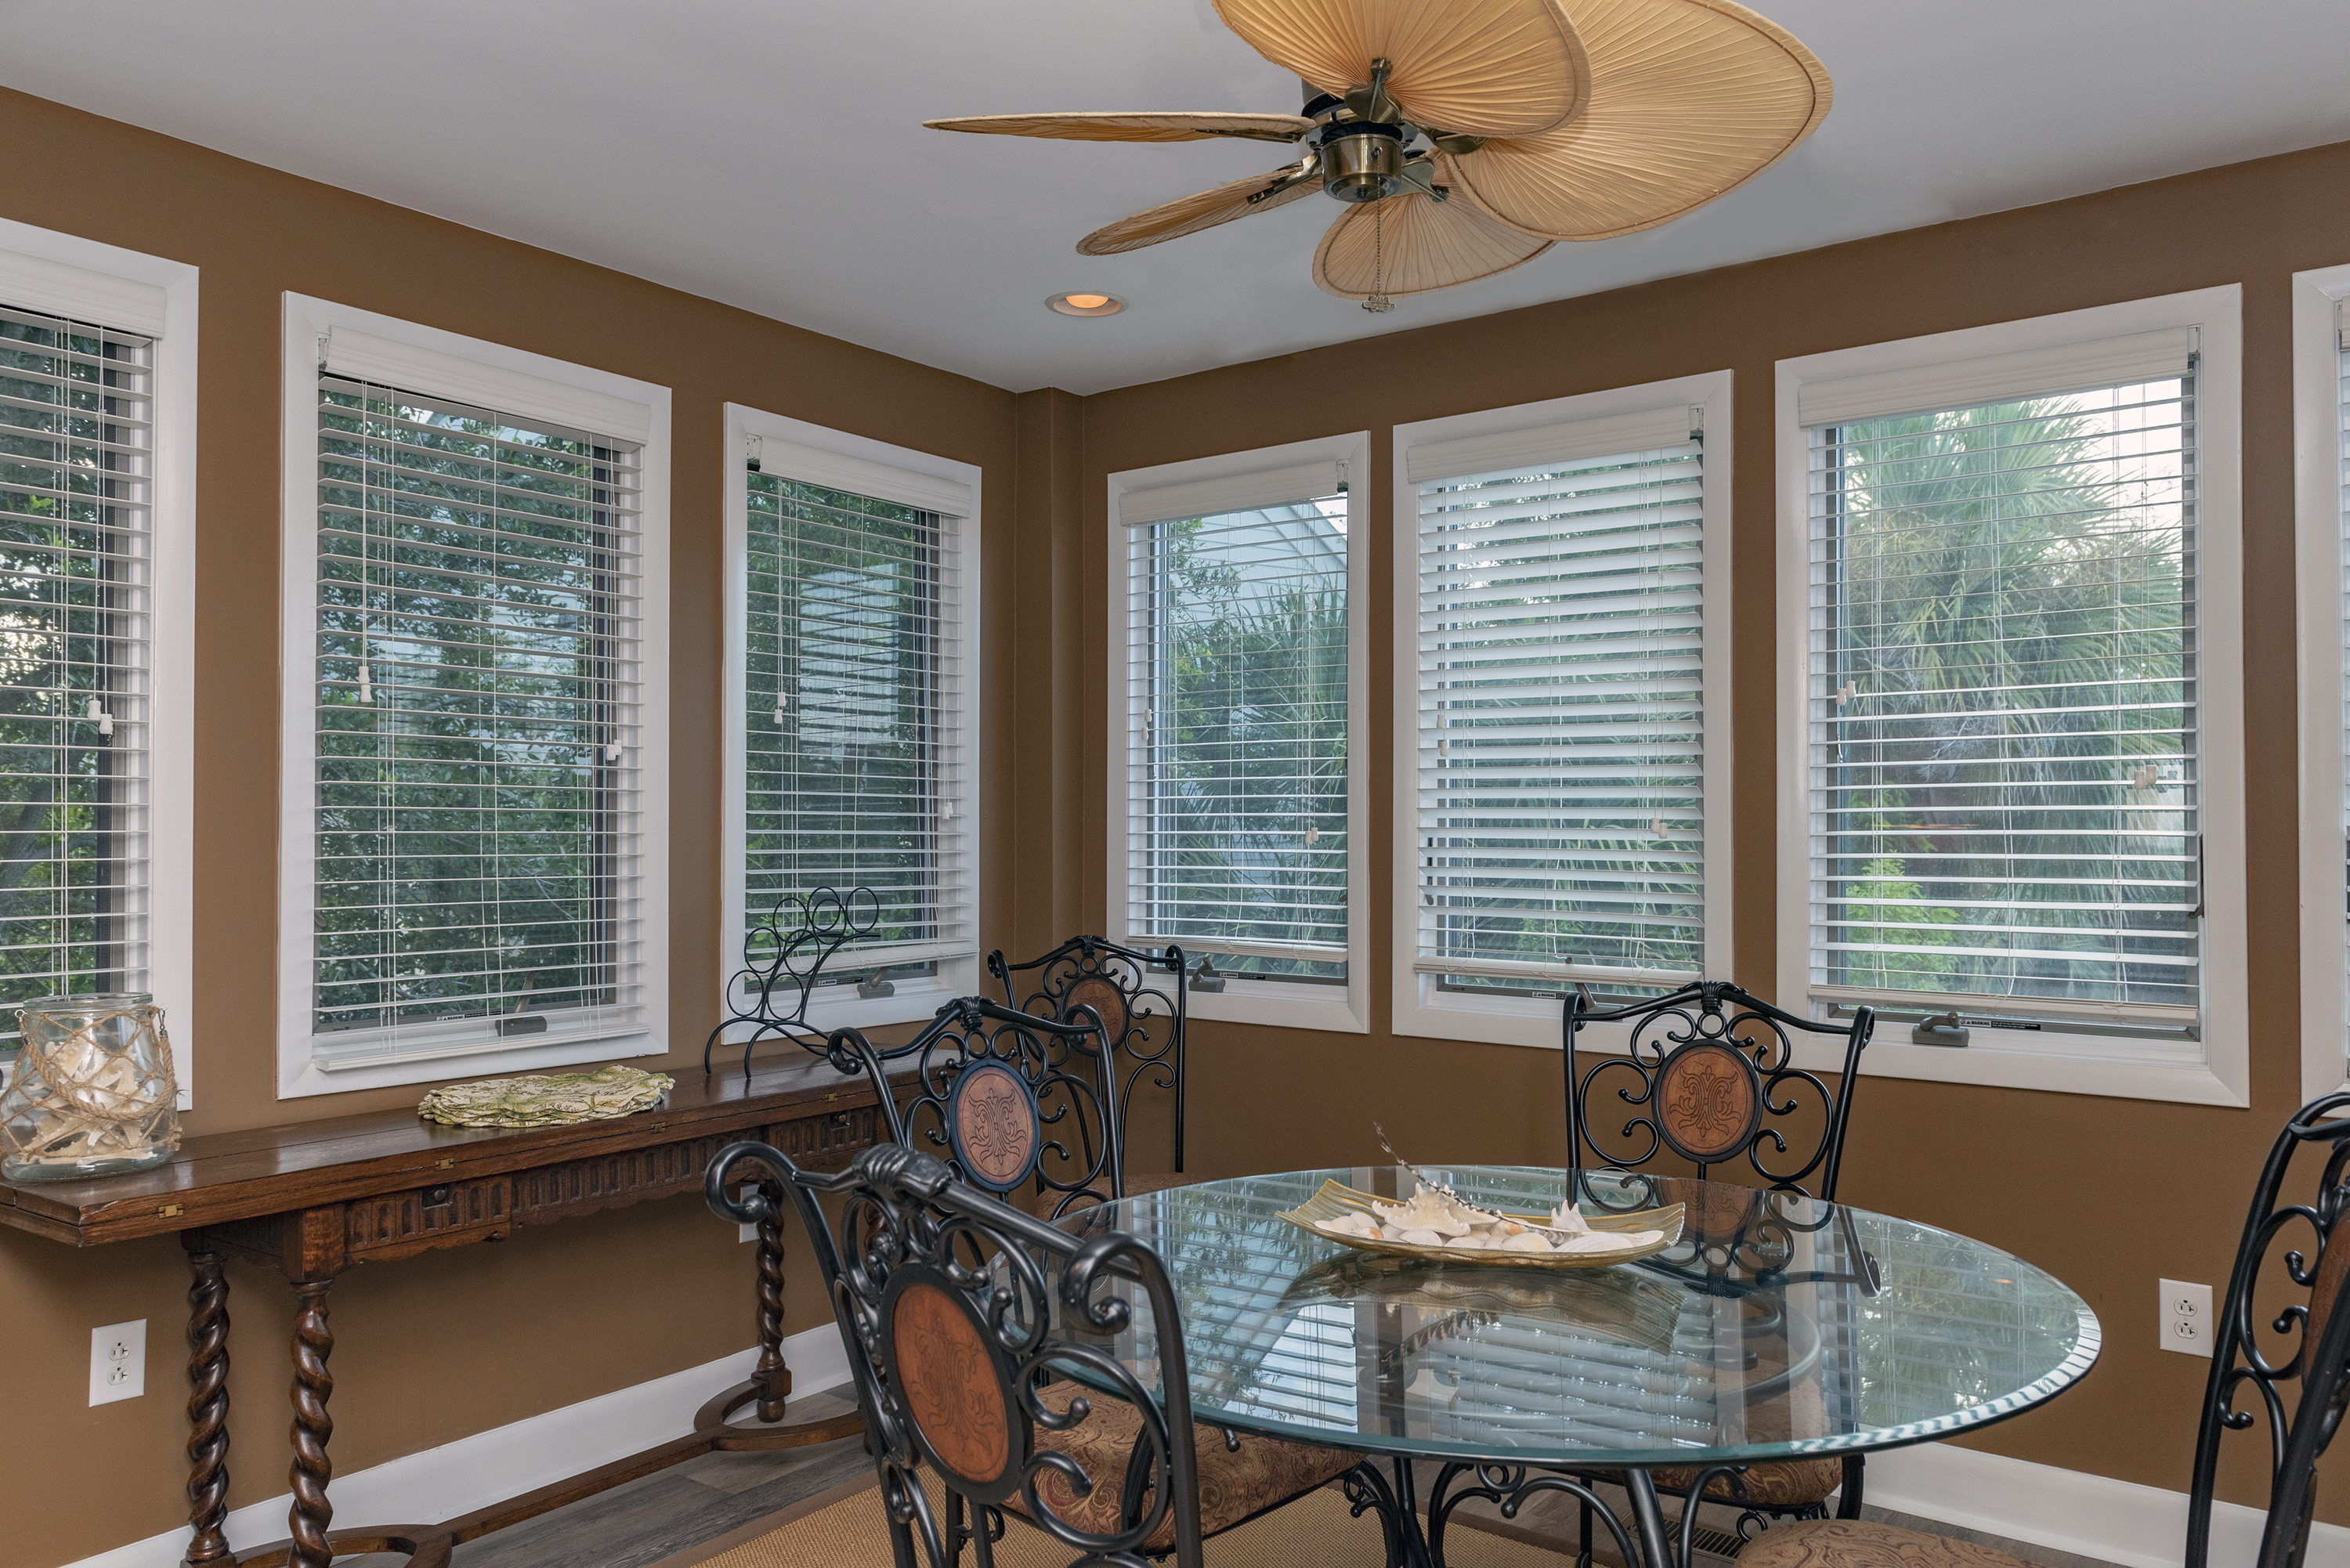 Surrounded by windows, the dining room has a table for 6.